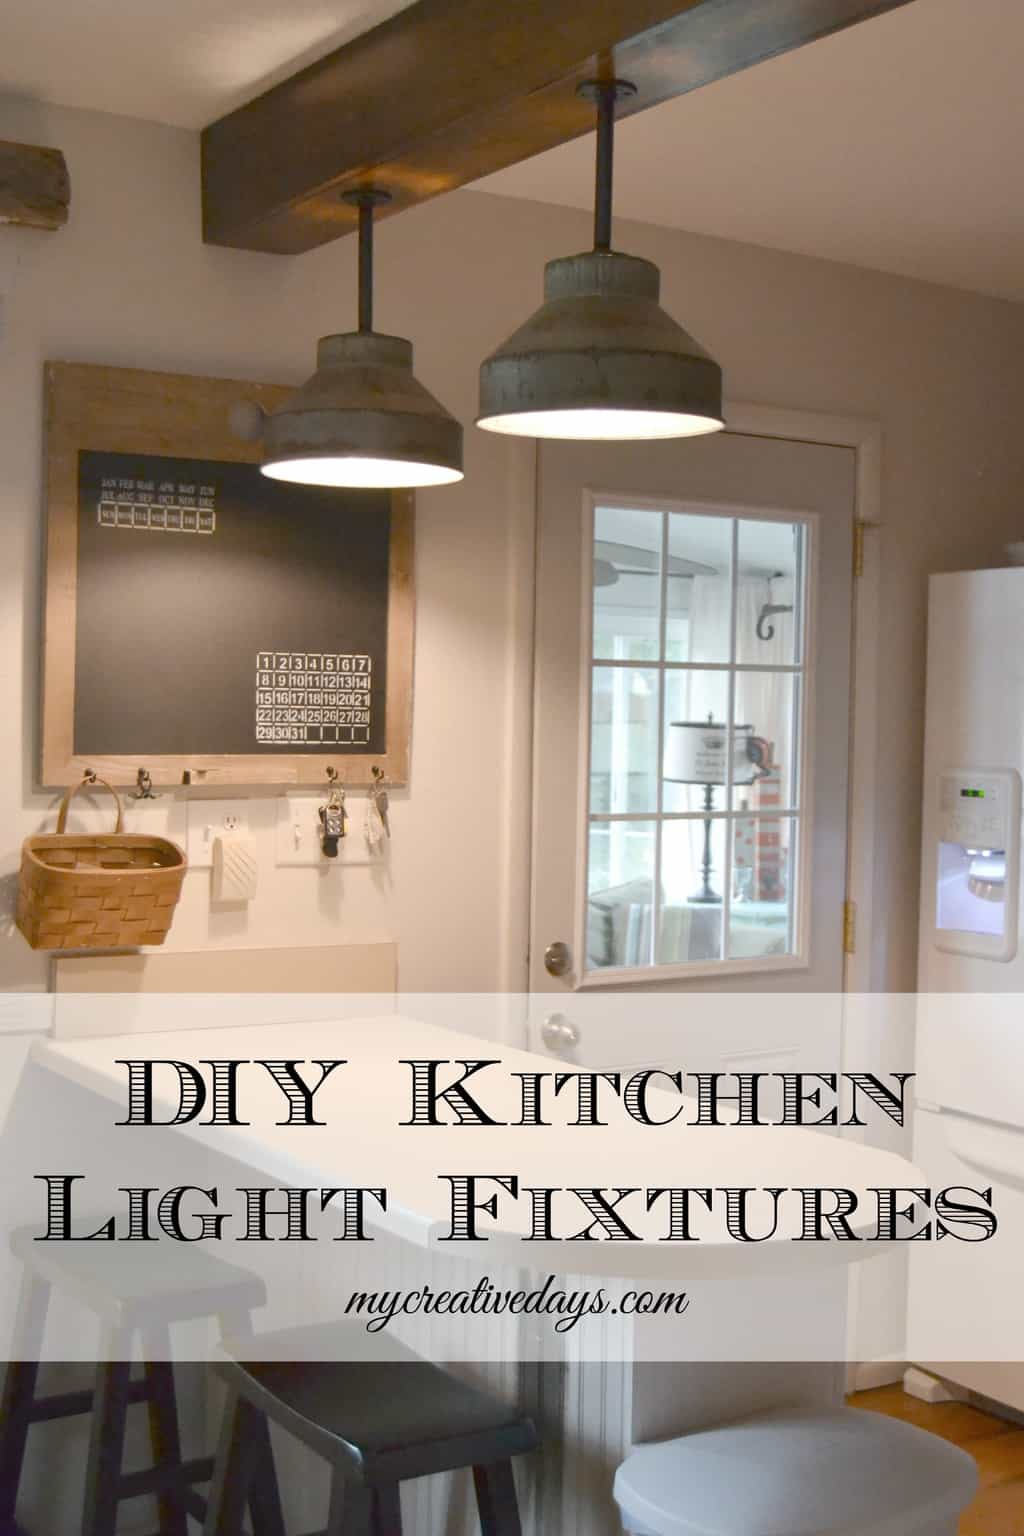 diy kitchen light fixtures part 2 kitchen light Pin this DIY Kitchen Light Fixtures Part 2 mycreativedays com